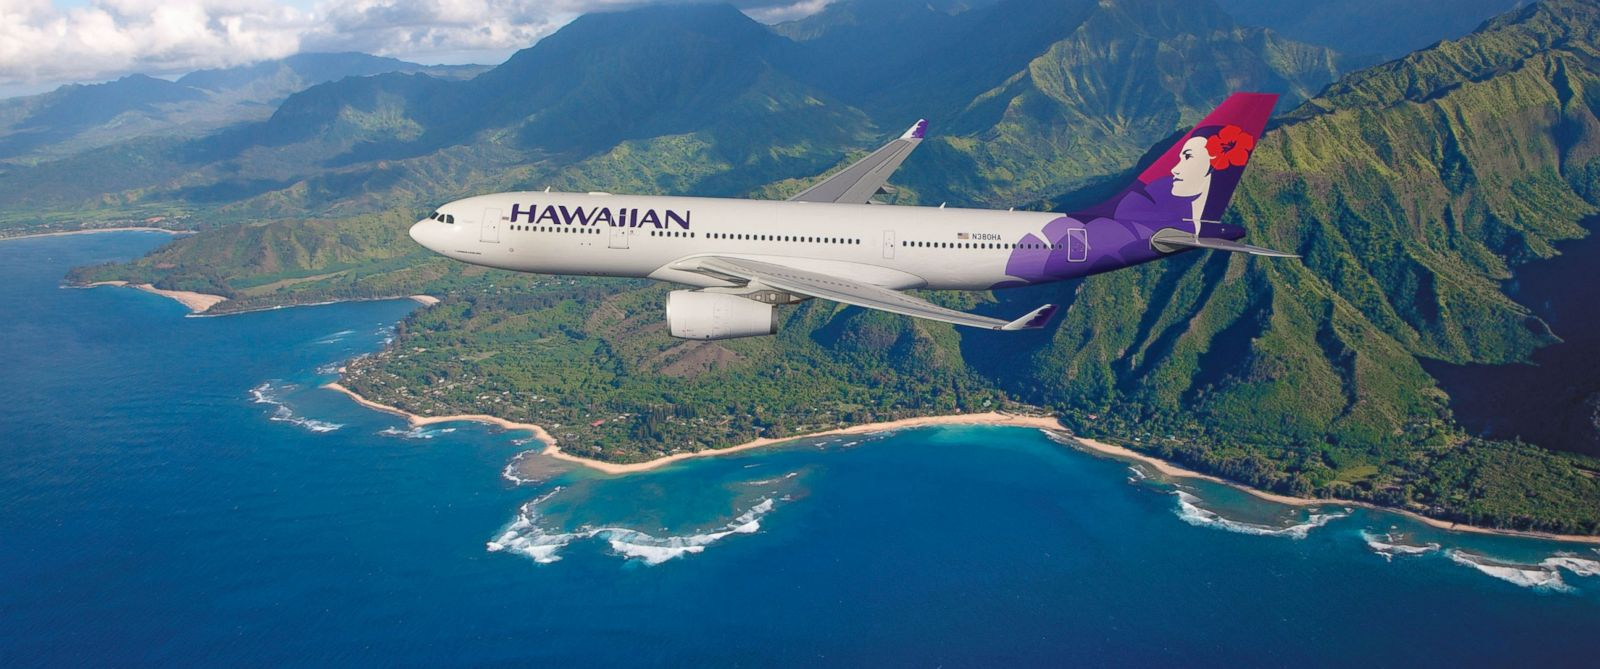 PHOTO: Hawaiian Airlines plane